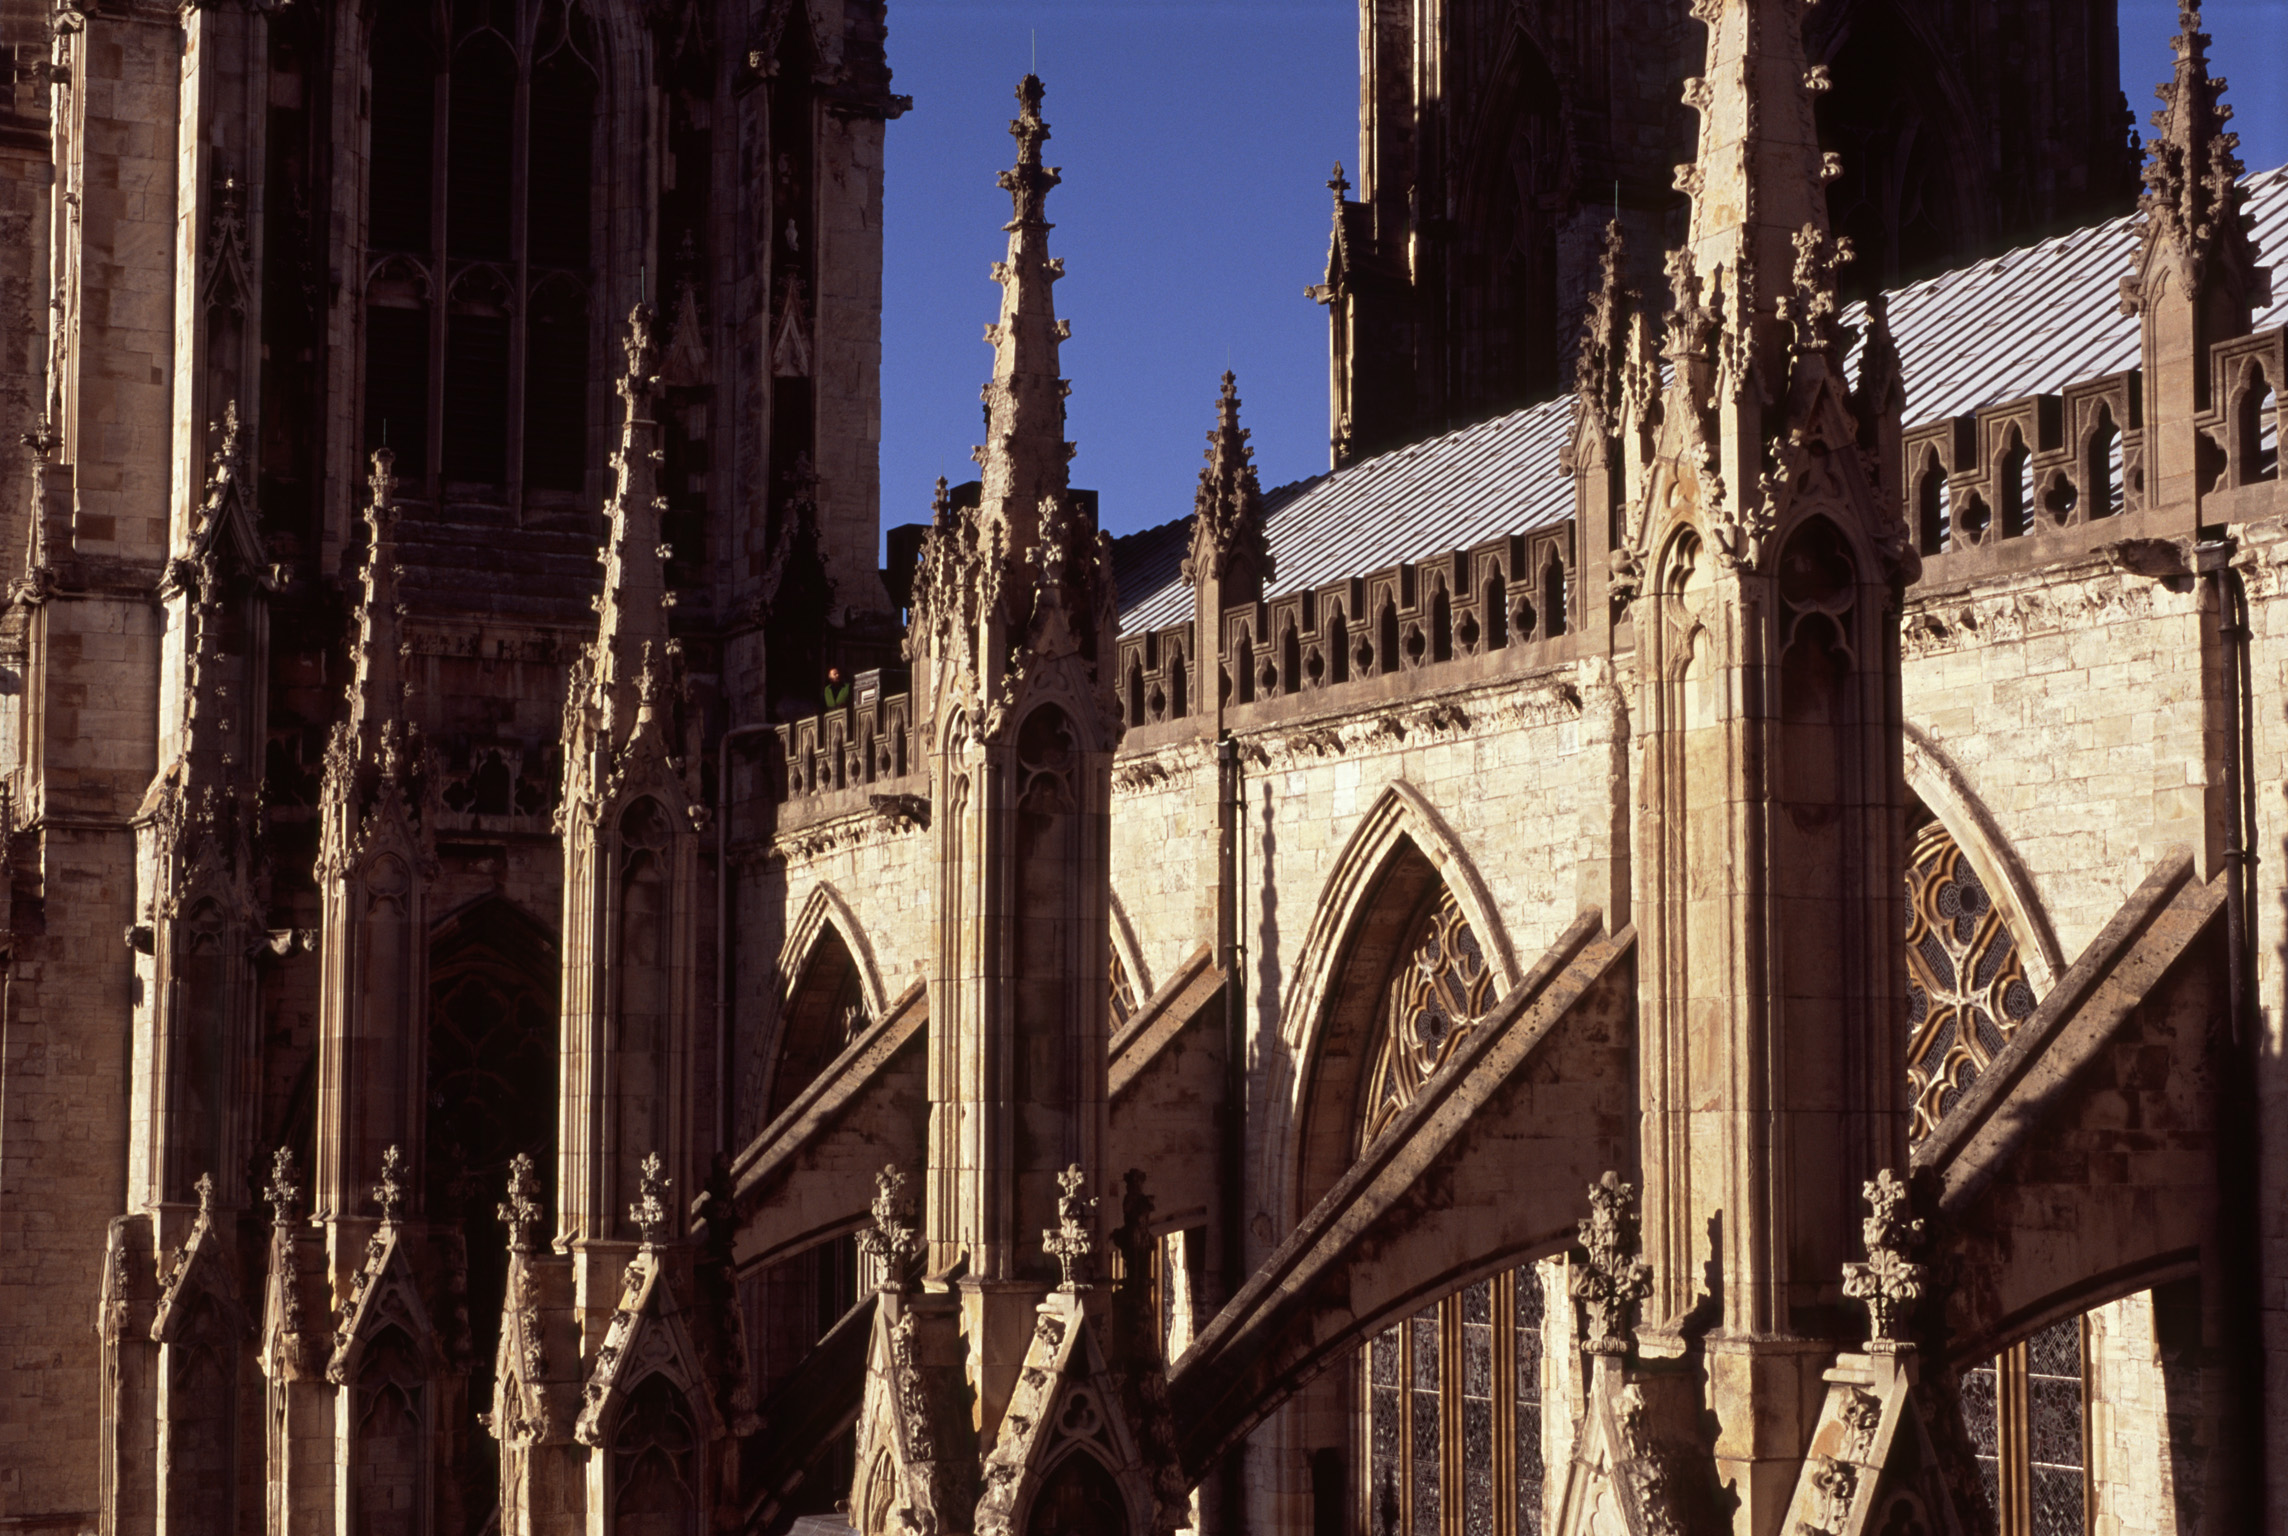 free stock photo of architectural detail of a minster  - architectural detail of a minster showing the flying buttresses on theexterior of the building each